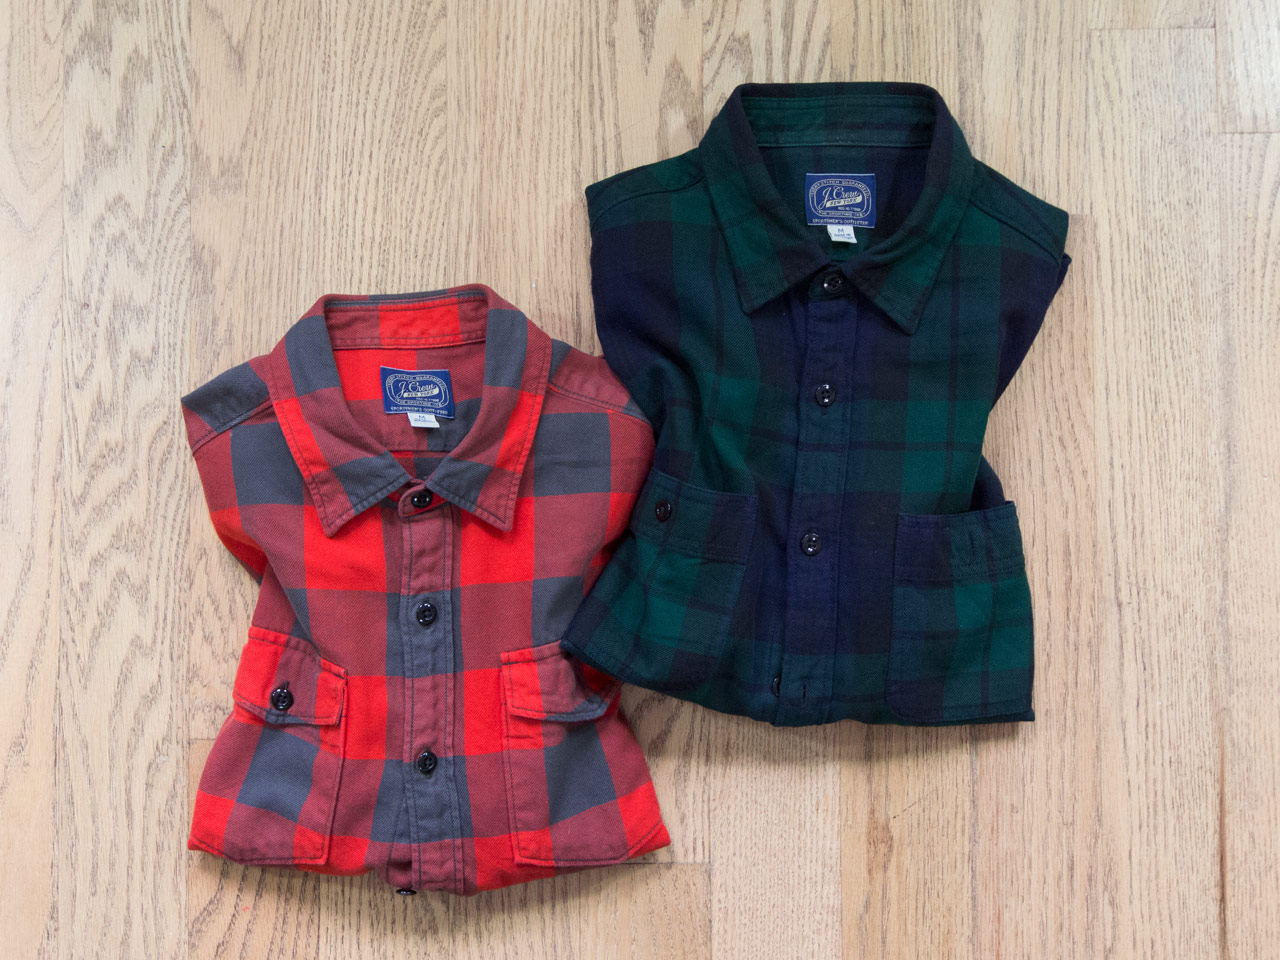 effortless essentials minimalist wardrobe - plaid flannel shirts